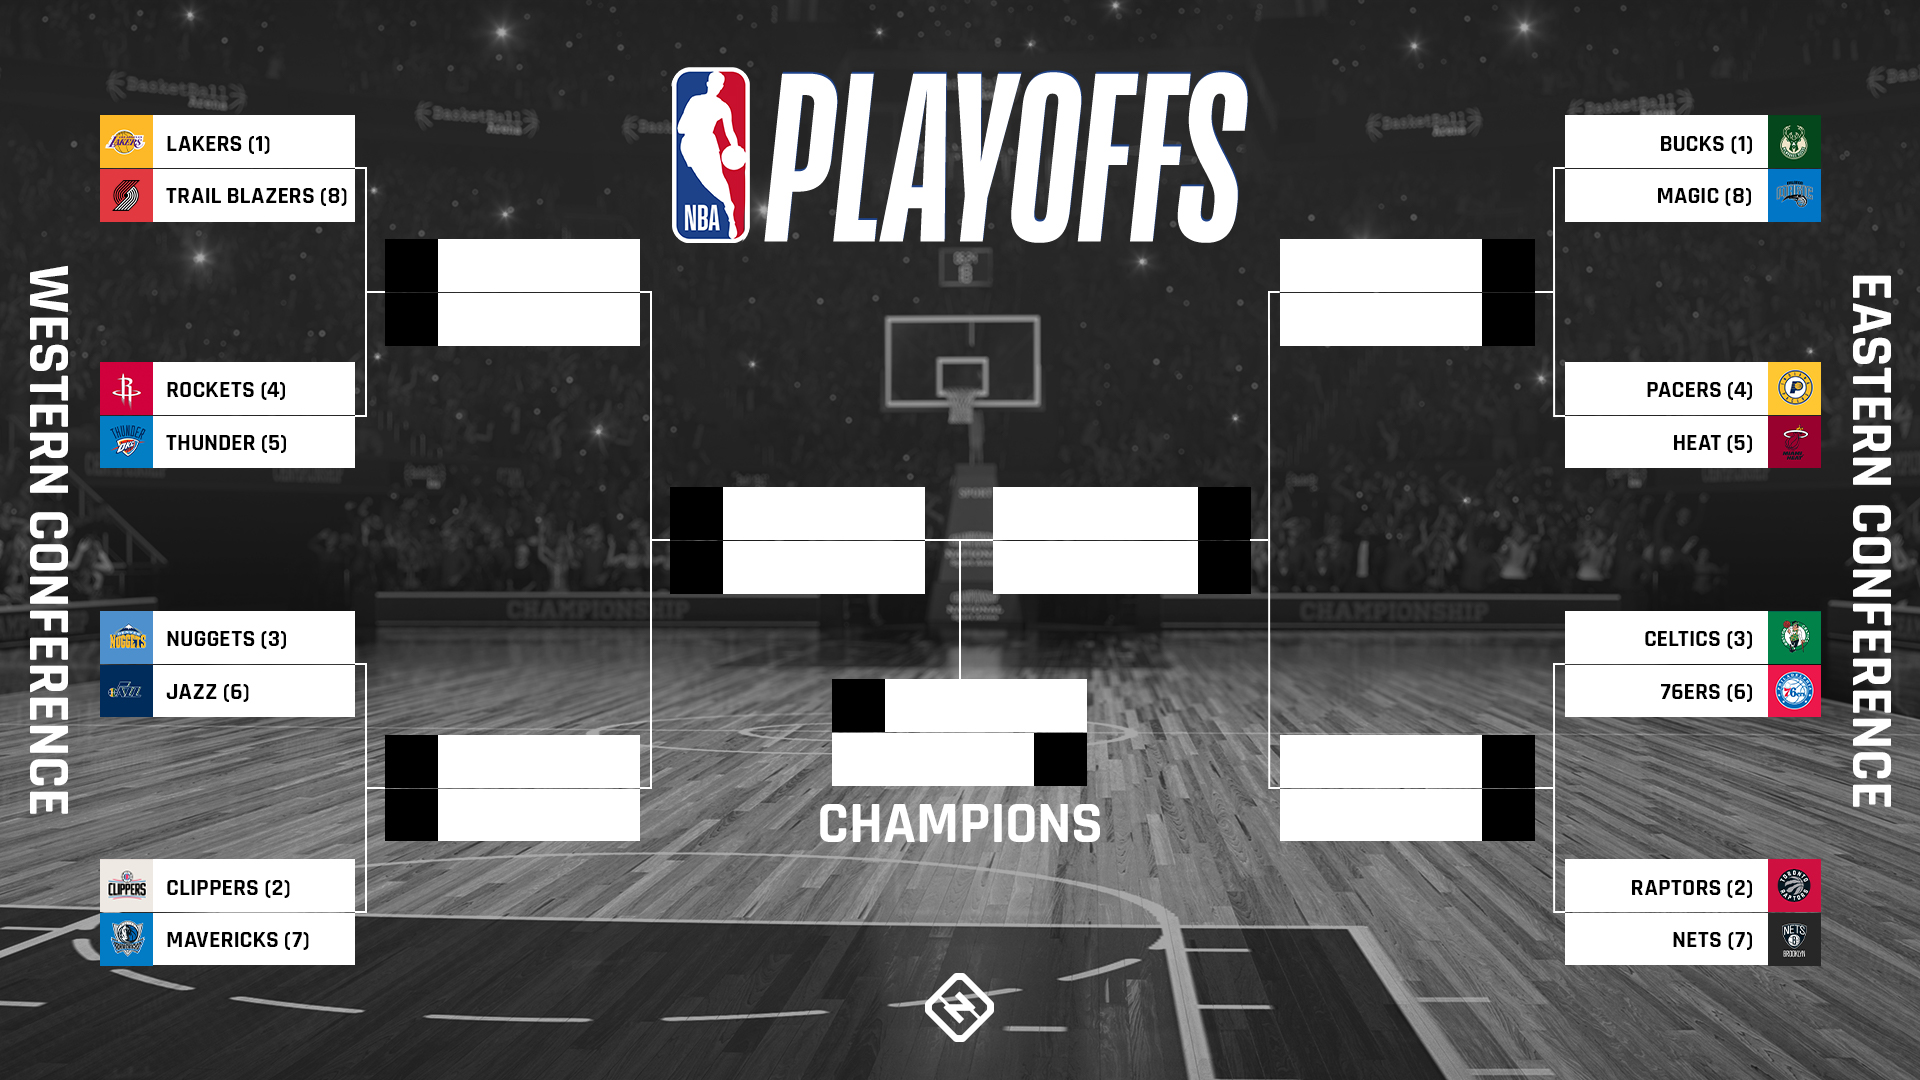 NBA playoff schedule 2020: Full bracket, dates, times, TV channels for every series 1